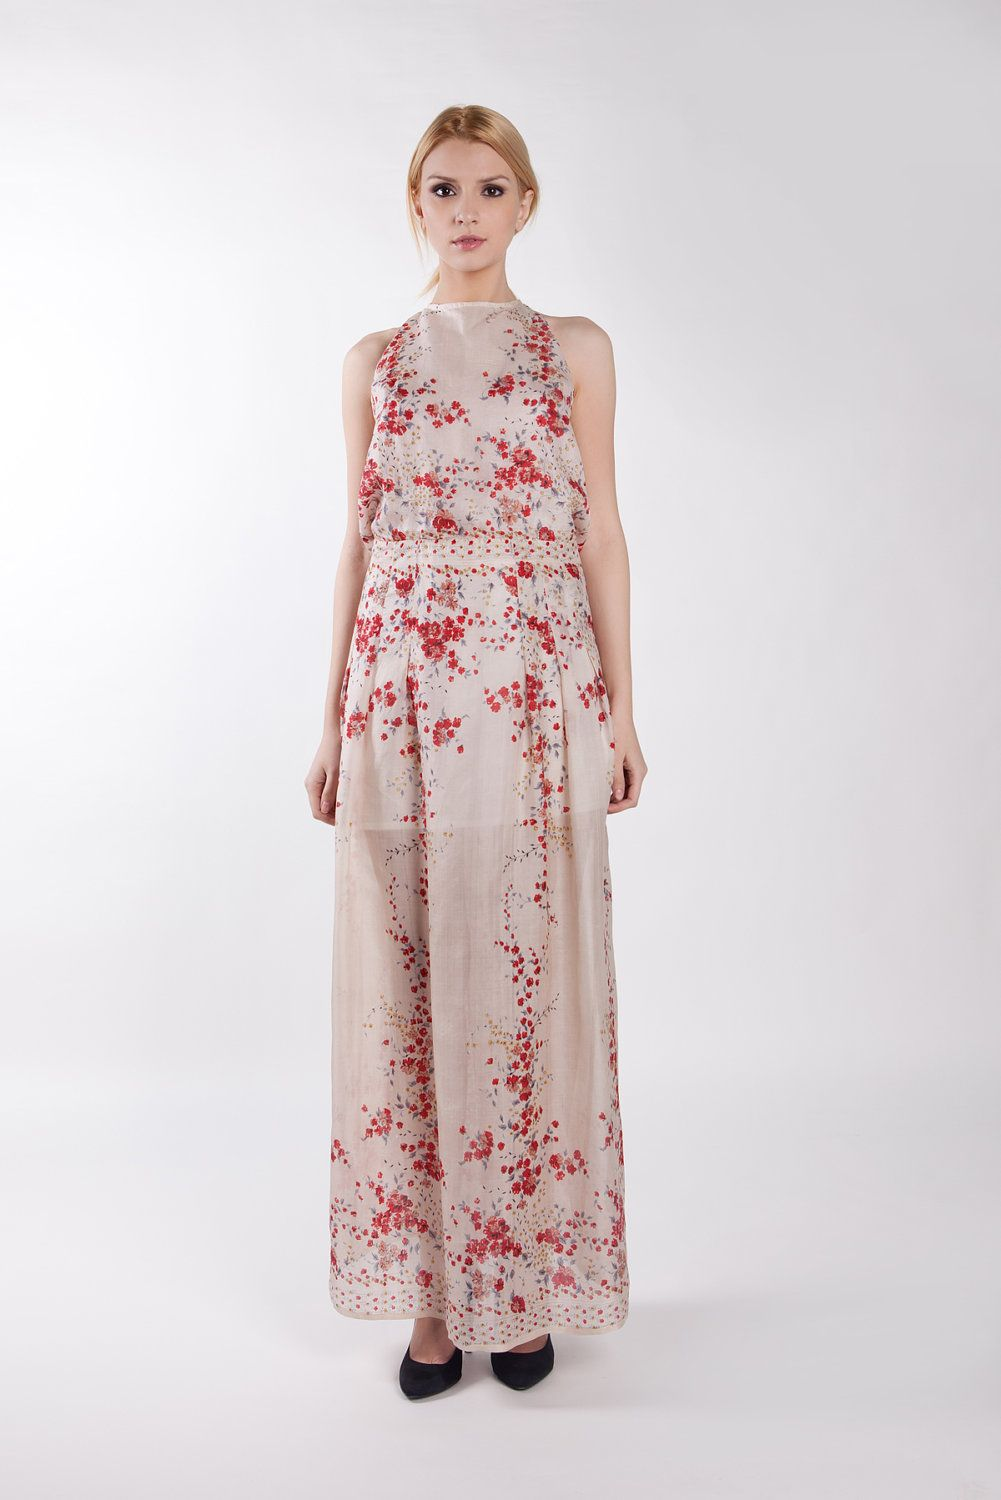 Cherry blossom flower print silk dress. Formal. Summer wedding.Maxi dress. $299.00, via Etsy. @Liz Burks